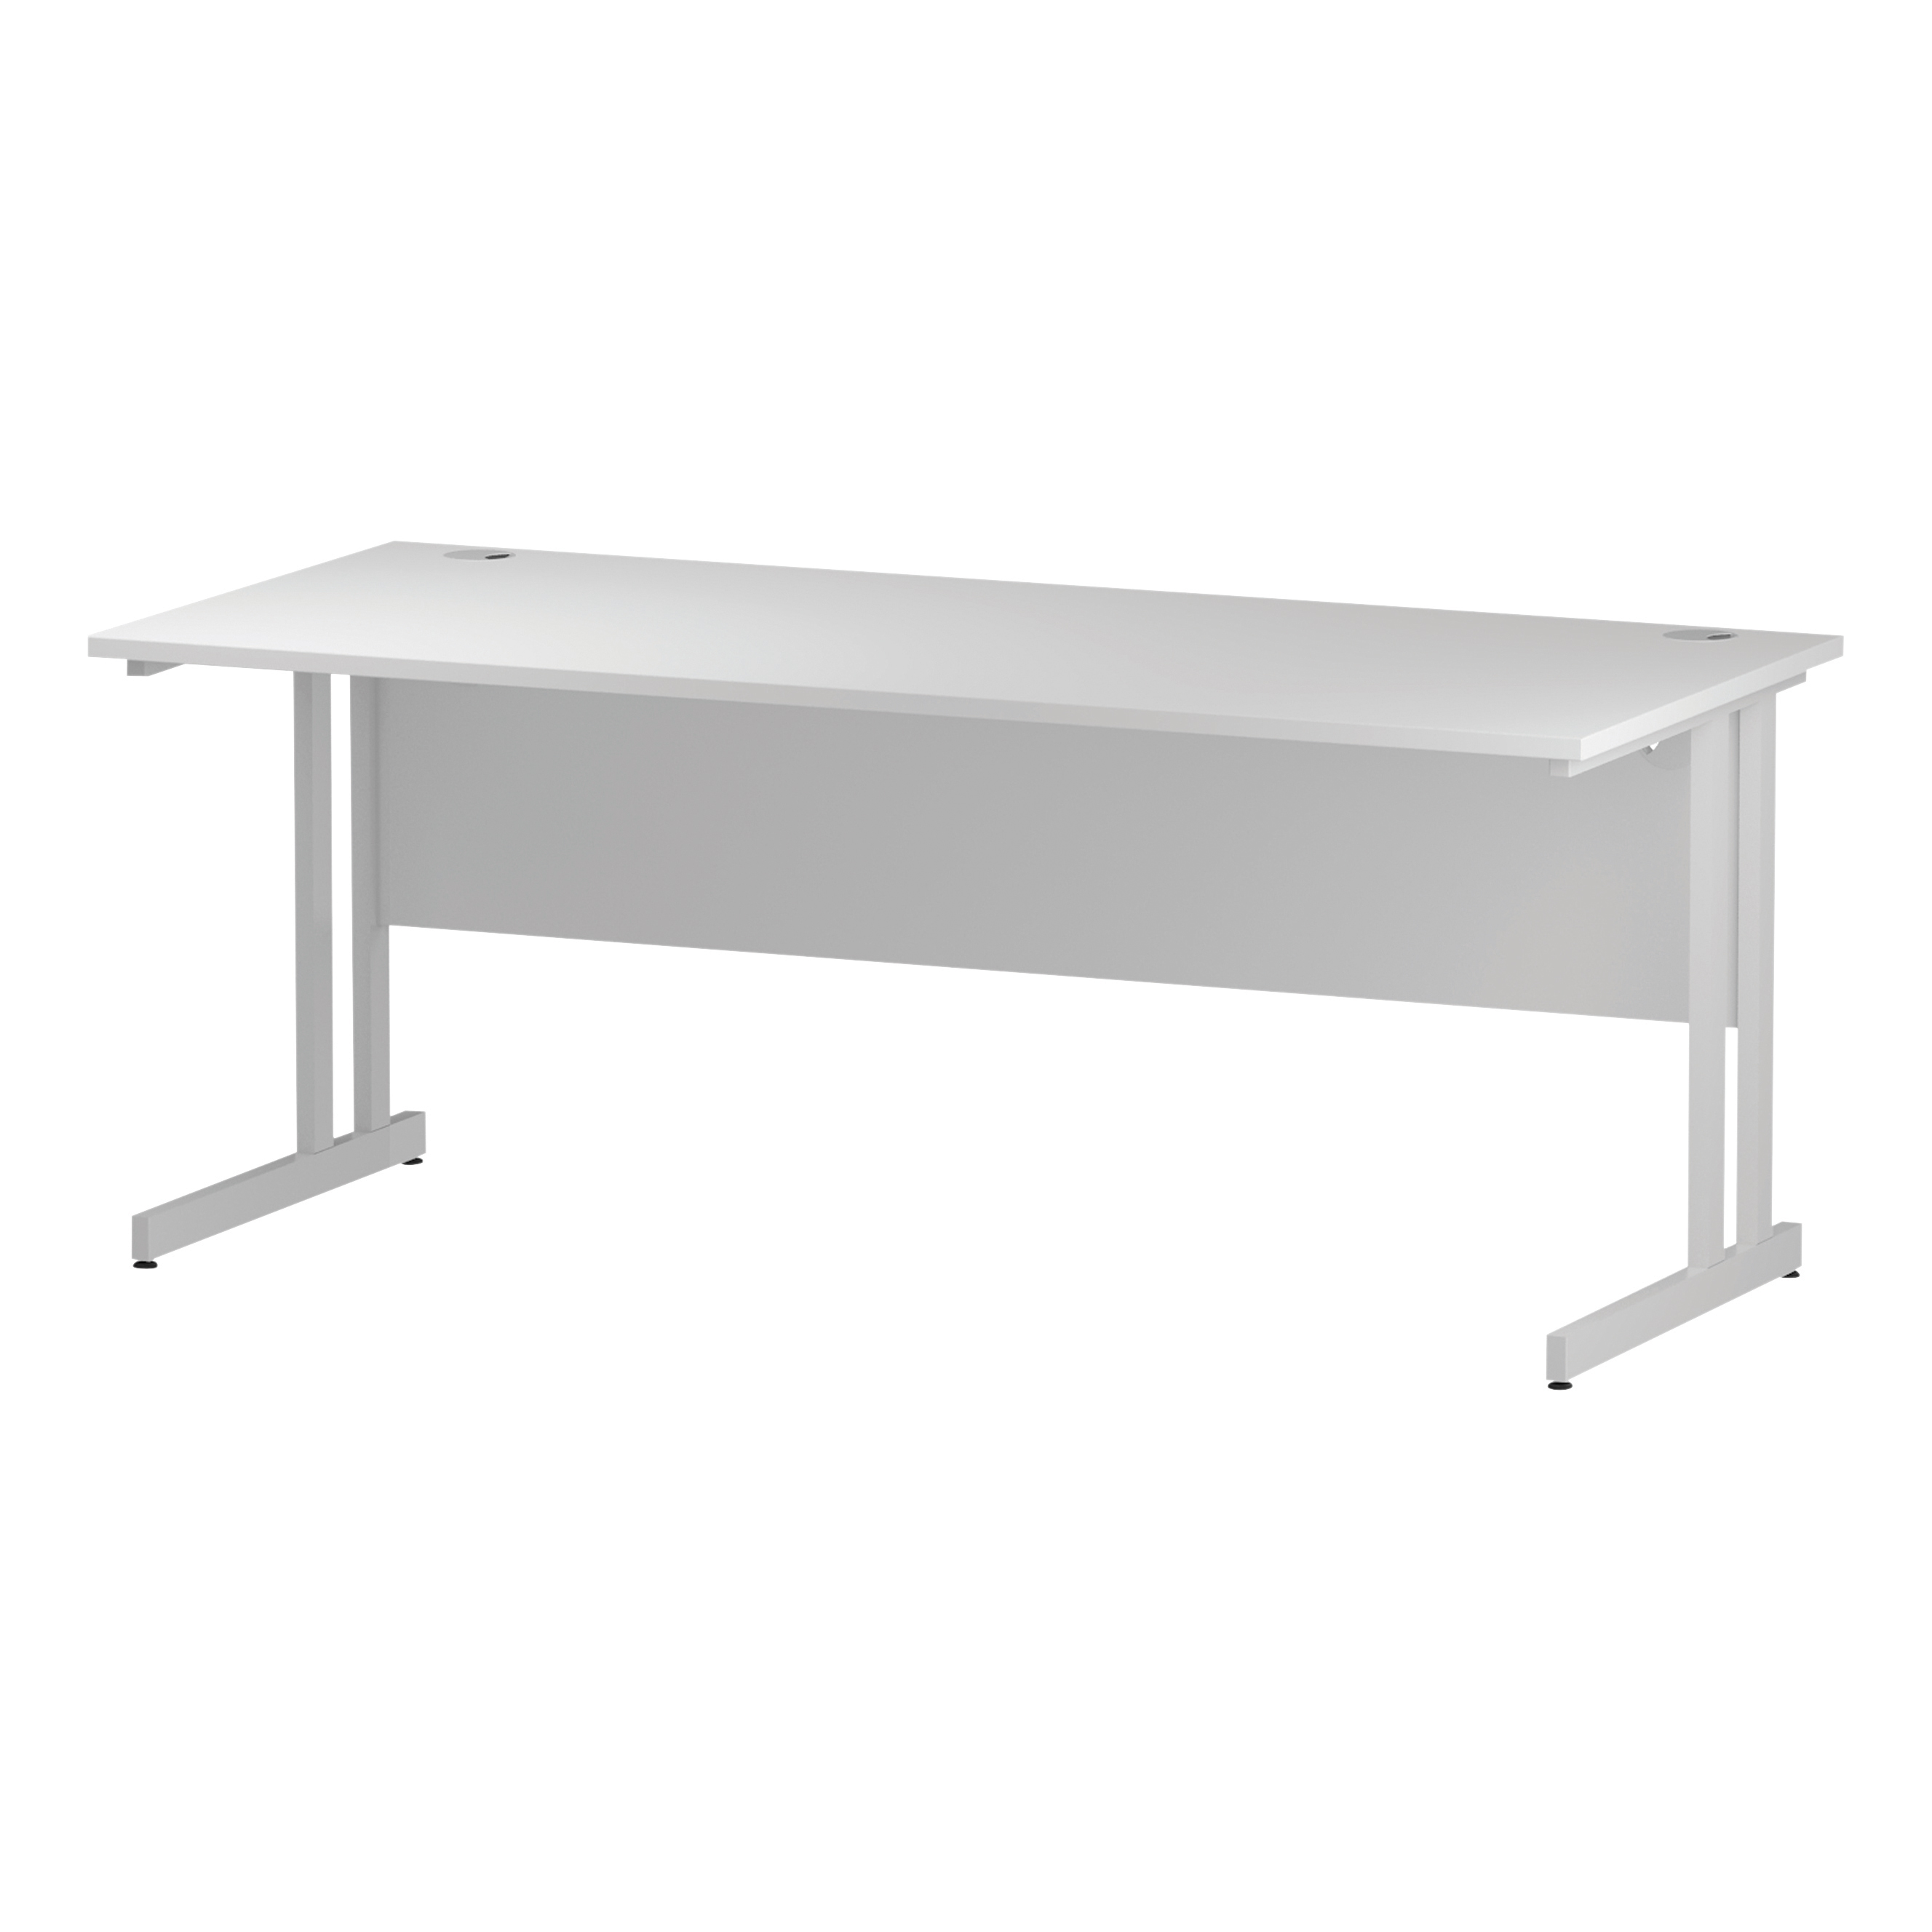 Trexus Rectangular Desk White Cantilever Leg 1800x800mm White Ref I002194